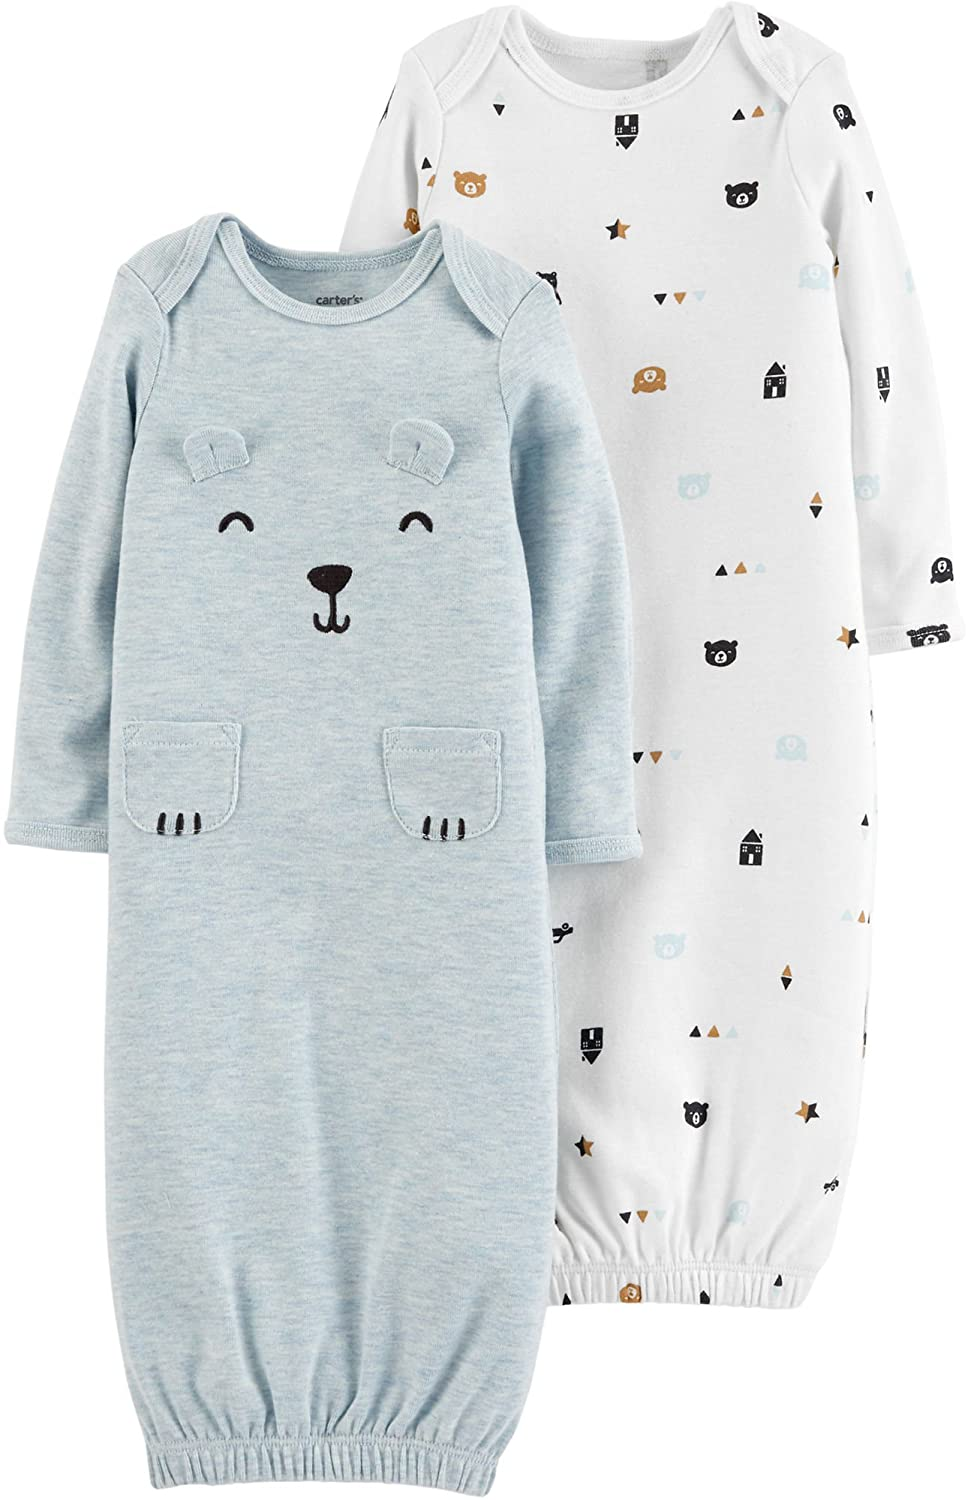 Carter's Baby Boys 2-pk. Bear Sleeper Gowns Carters P000508848